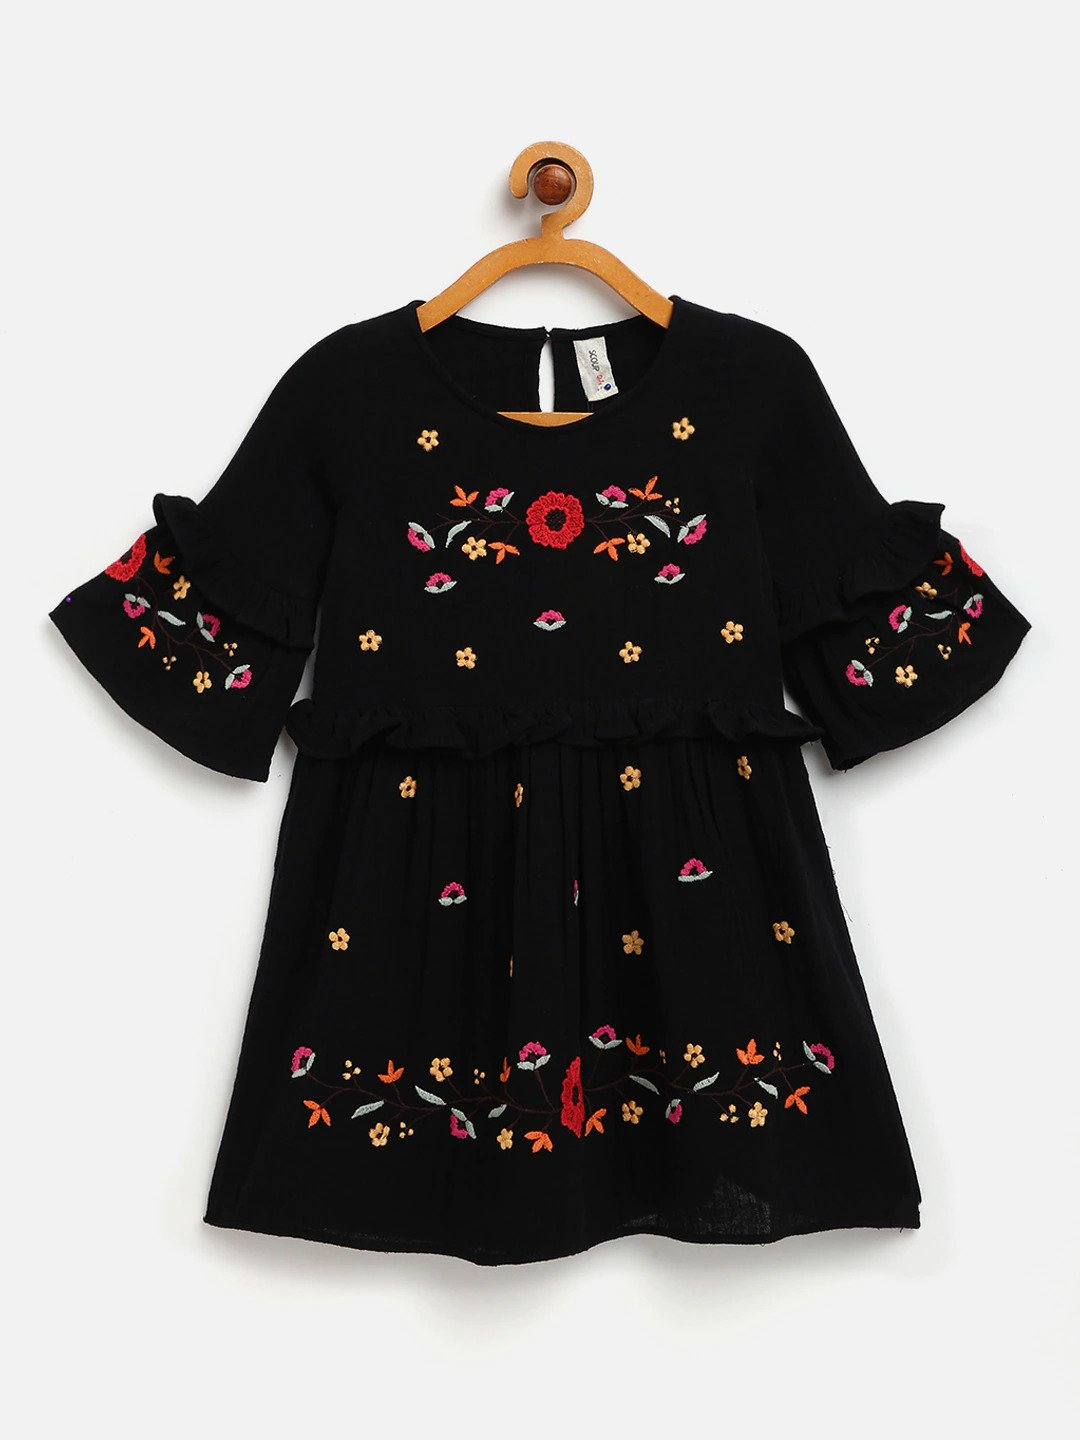 EMBROIDERED COTTON DRESS WITH FLARRED SLEEVES